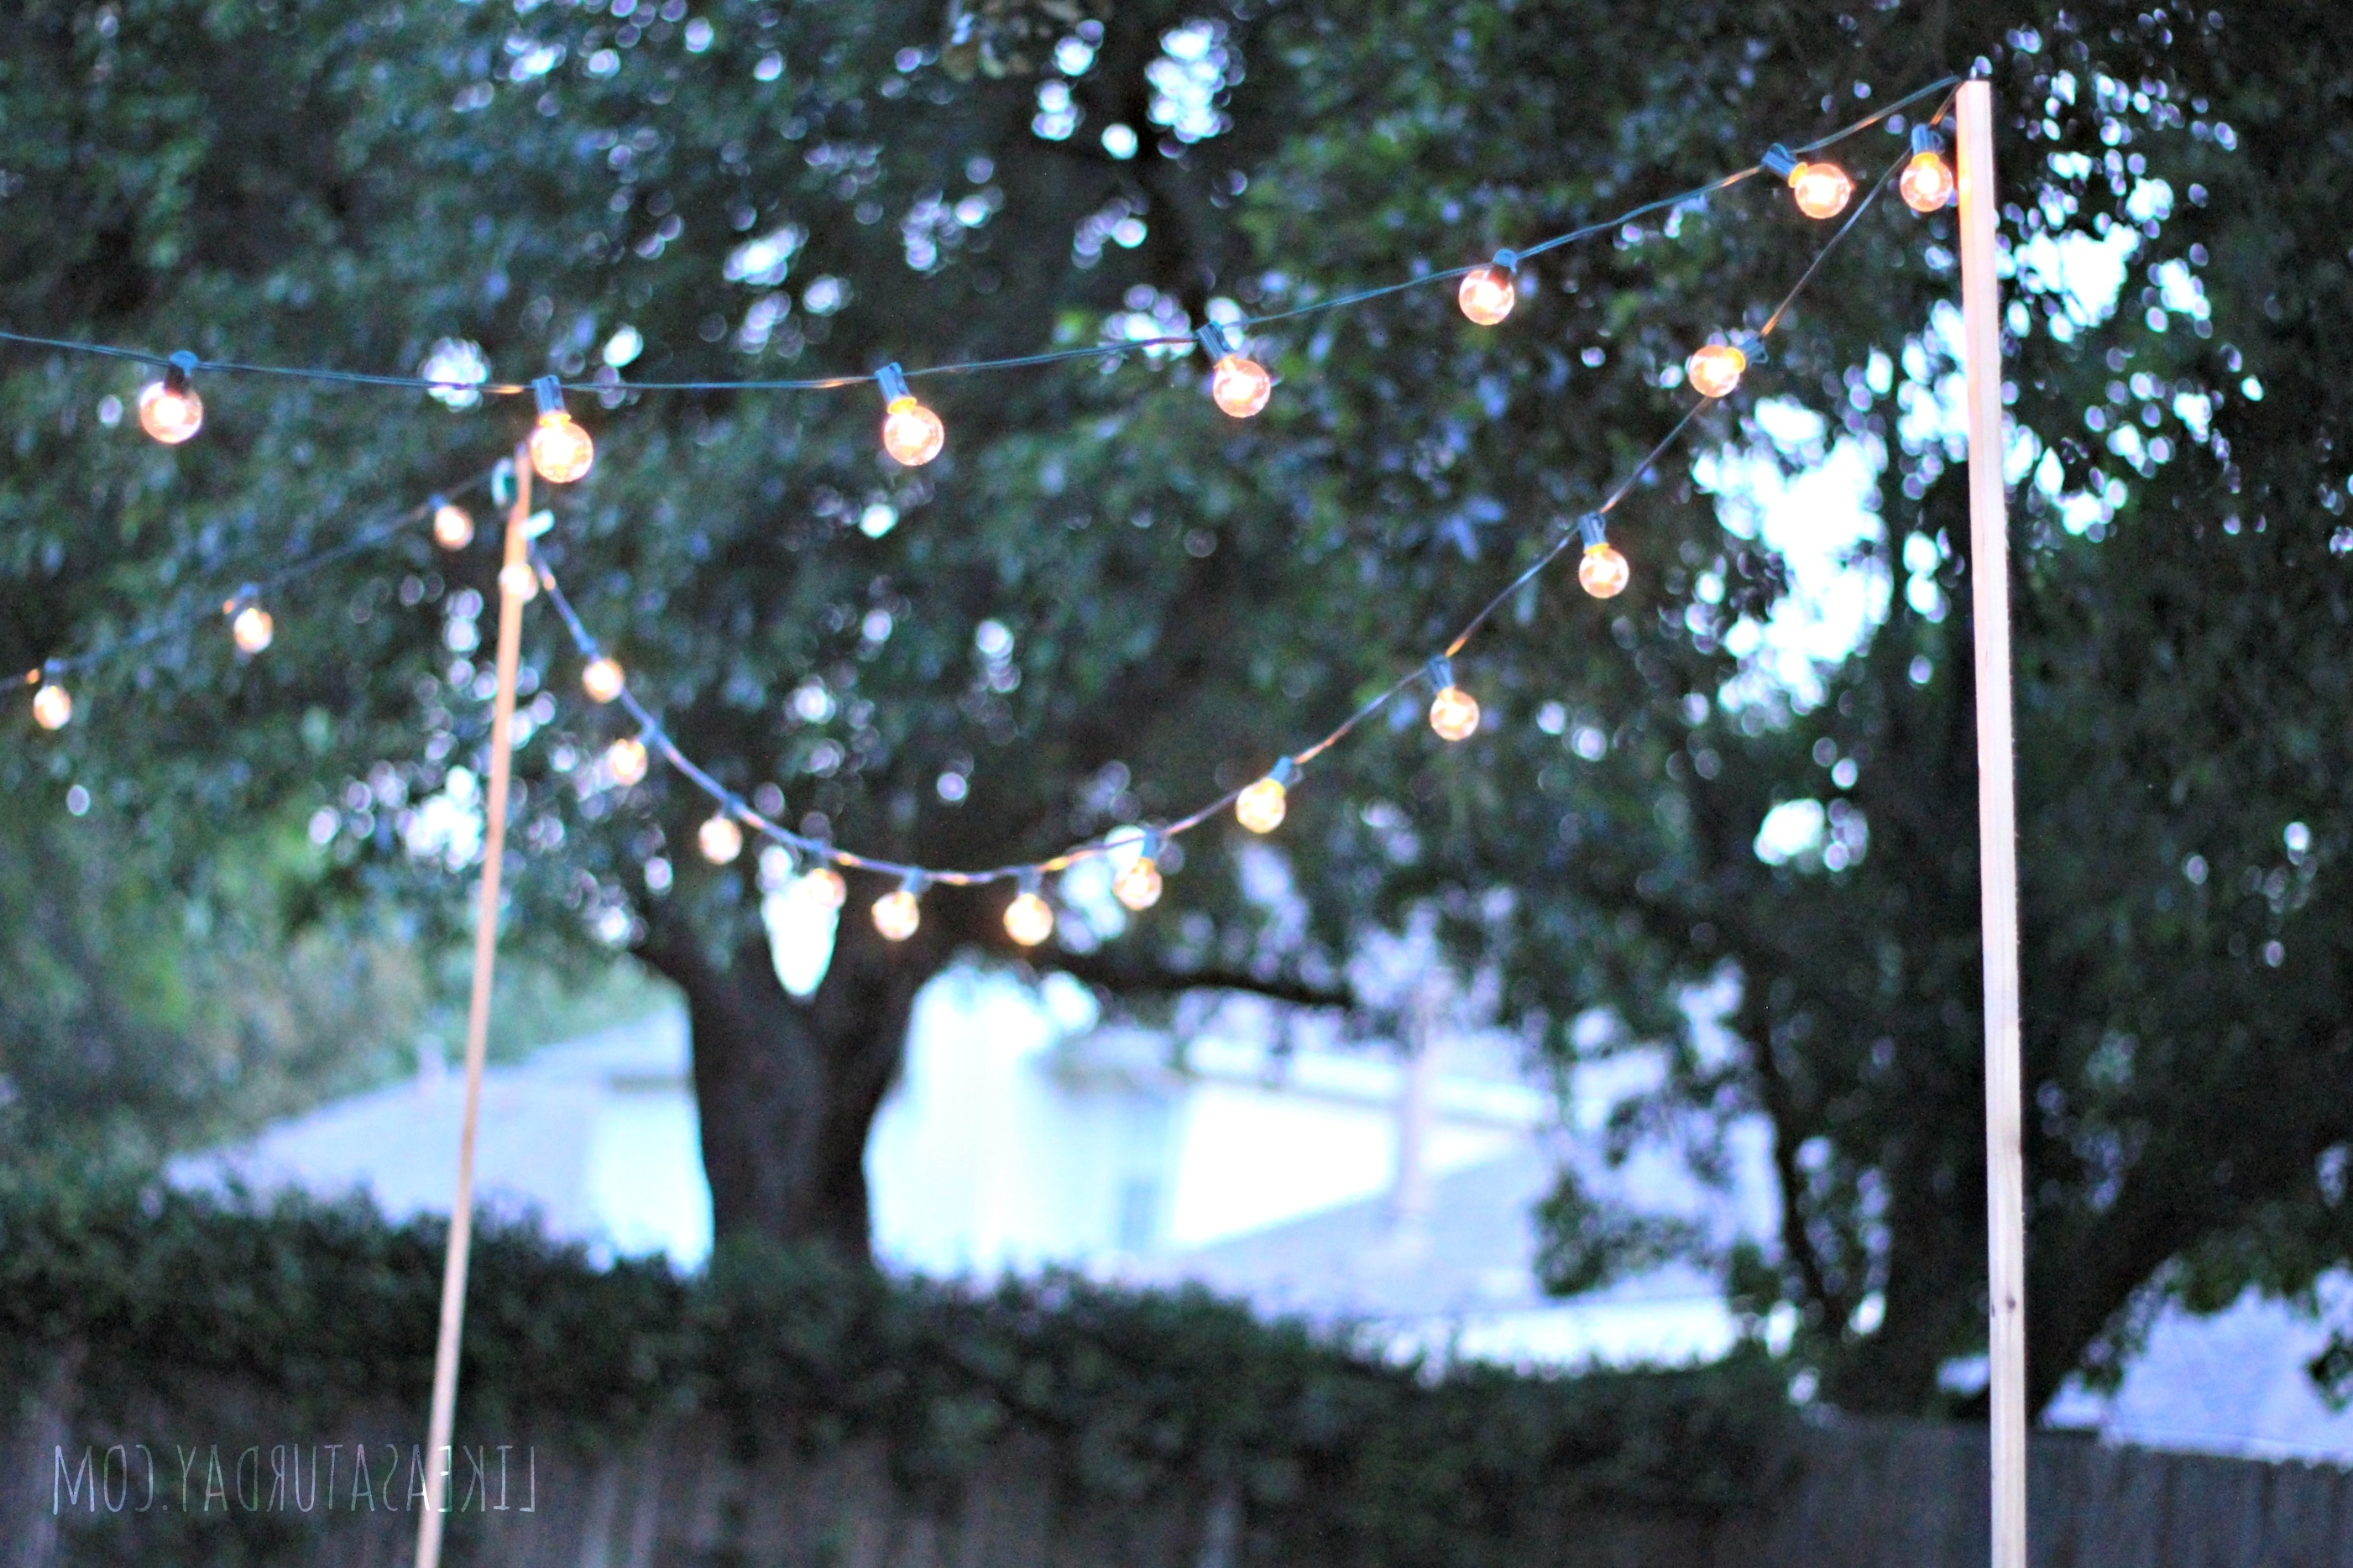 Hanging Outdoor Christmas Lights Without Nails With Regard To Well Known Diy : Outdoor String Lights Hanging Brick Patio Without Nails Party (View 10 of 20)